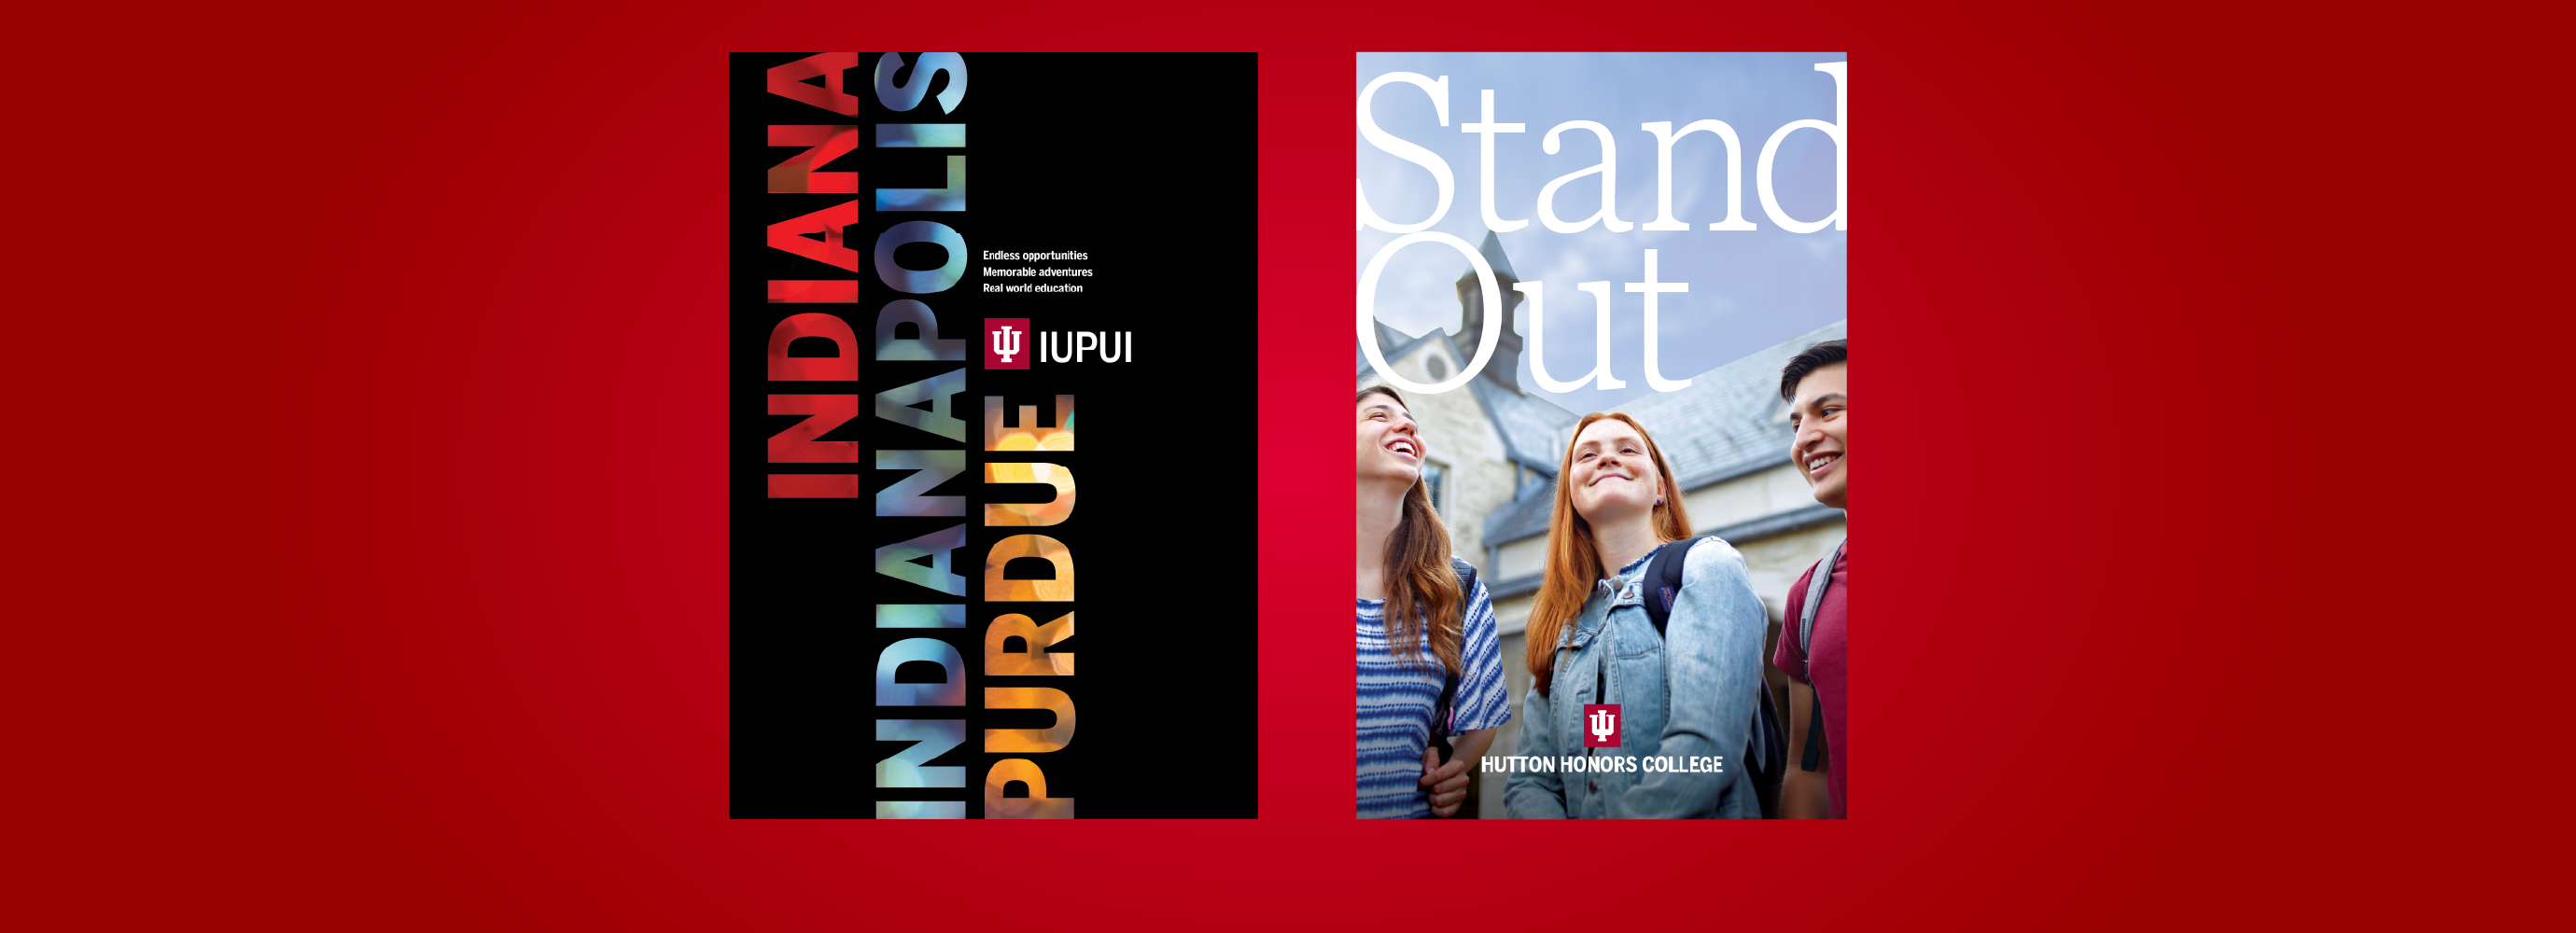 IUPUI and Hutton Honors College viewbooks on red background